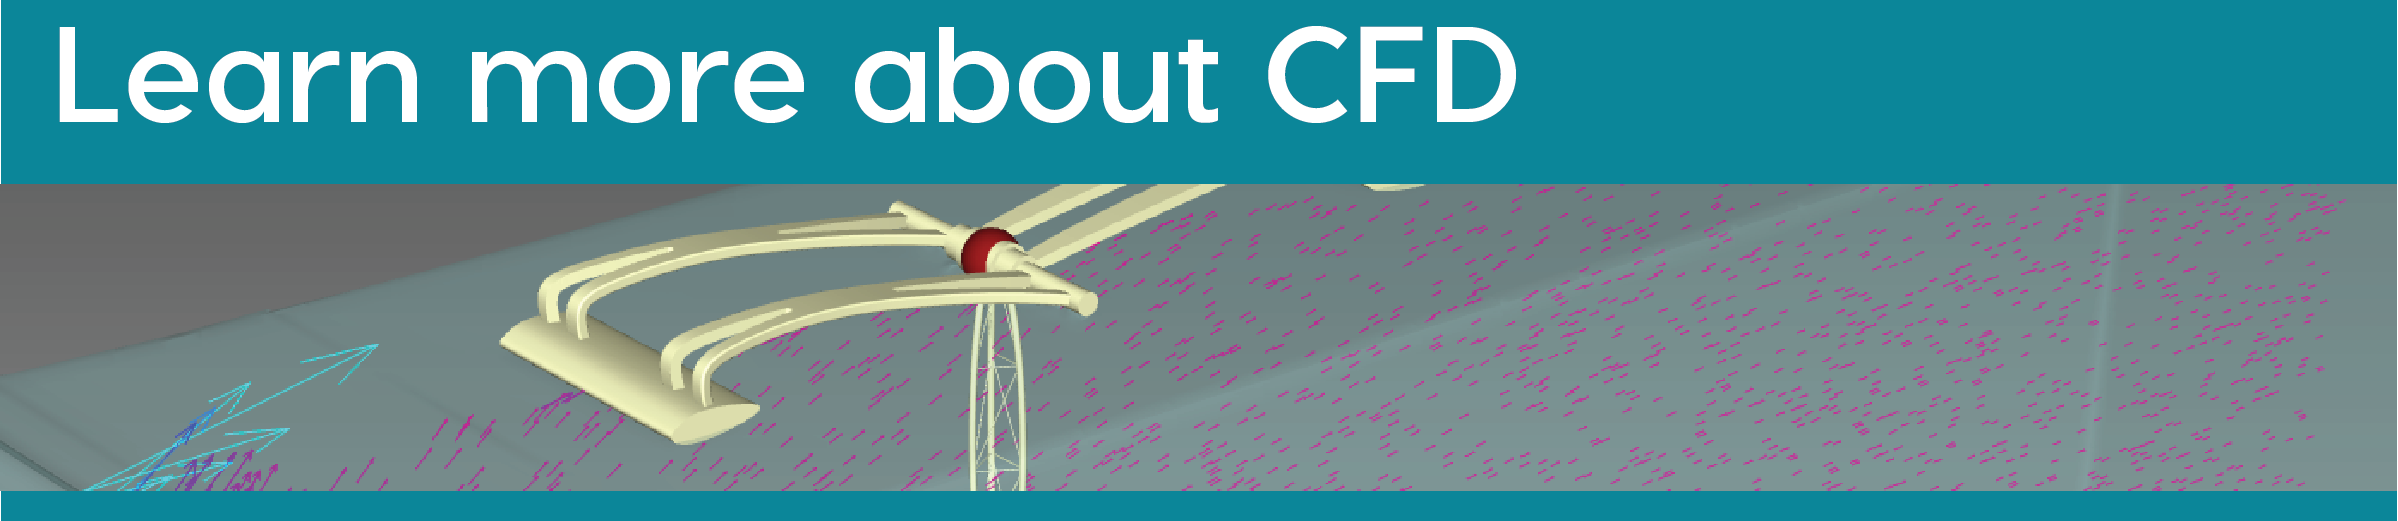 Learn more about CFD